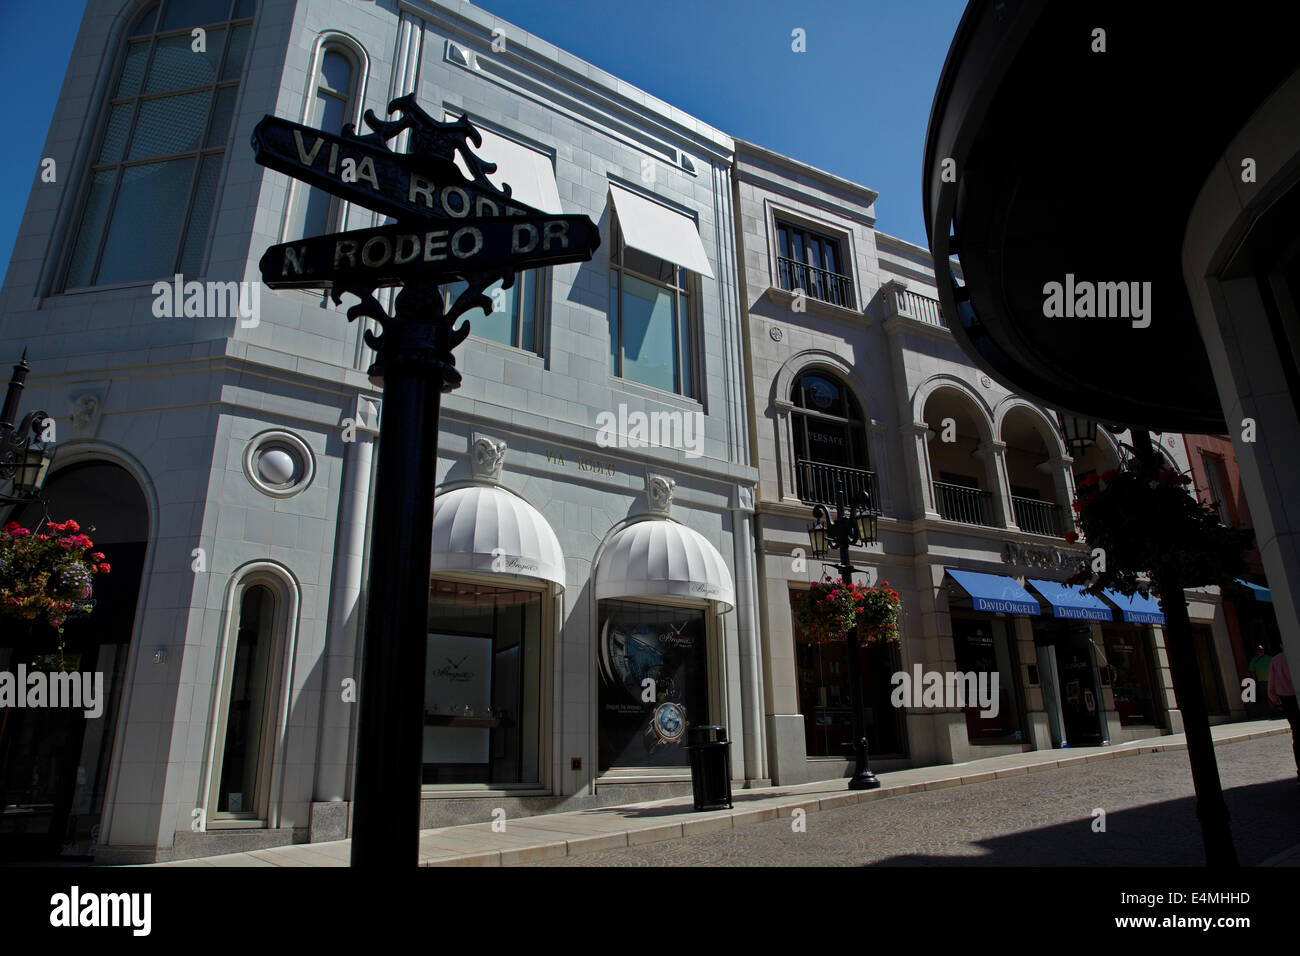 Rodeo Drive, luxury shopping street in Beverly Hills, Los Angeles, California, USA - Stock Image